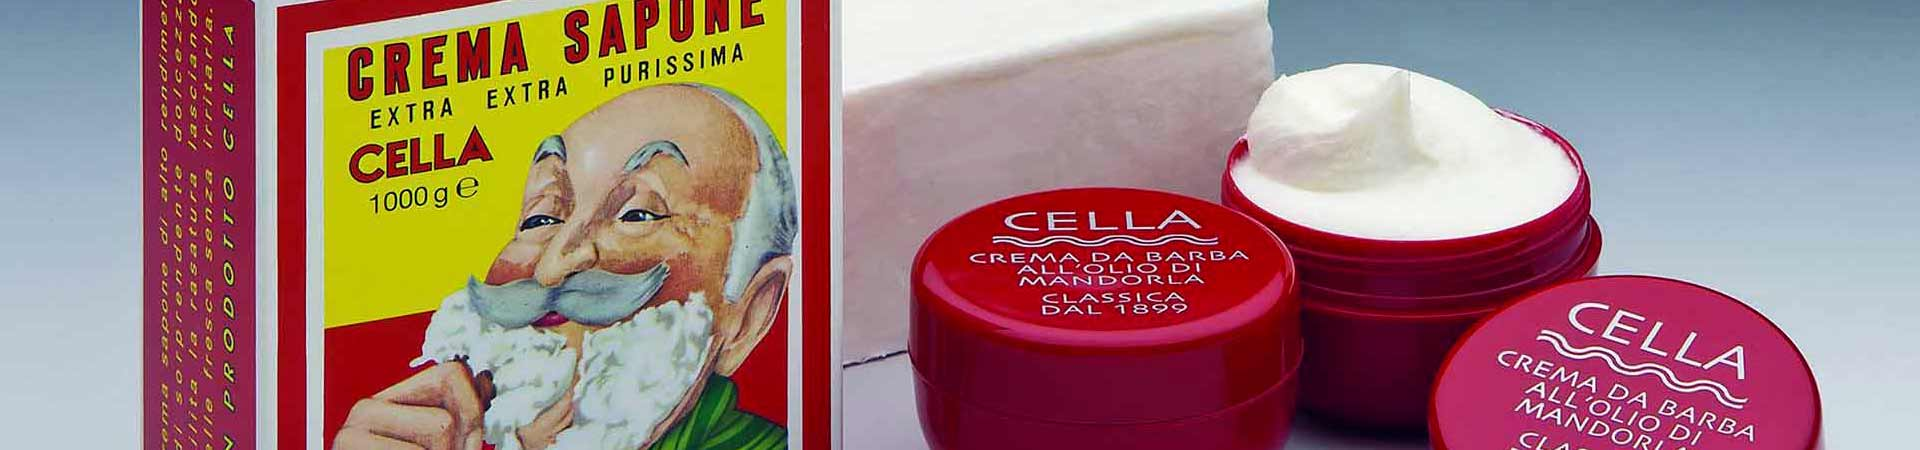 Cella Milano shaving and beard care products